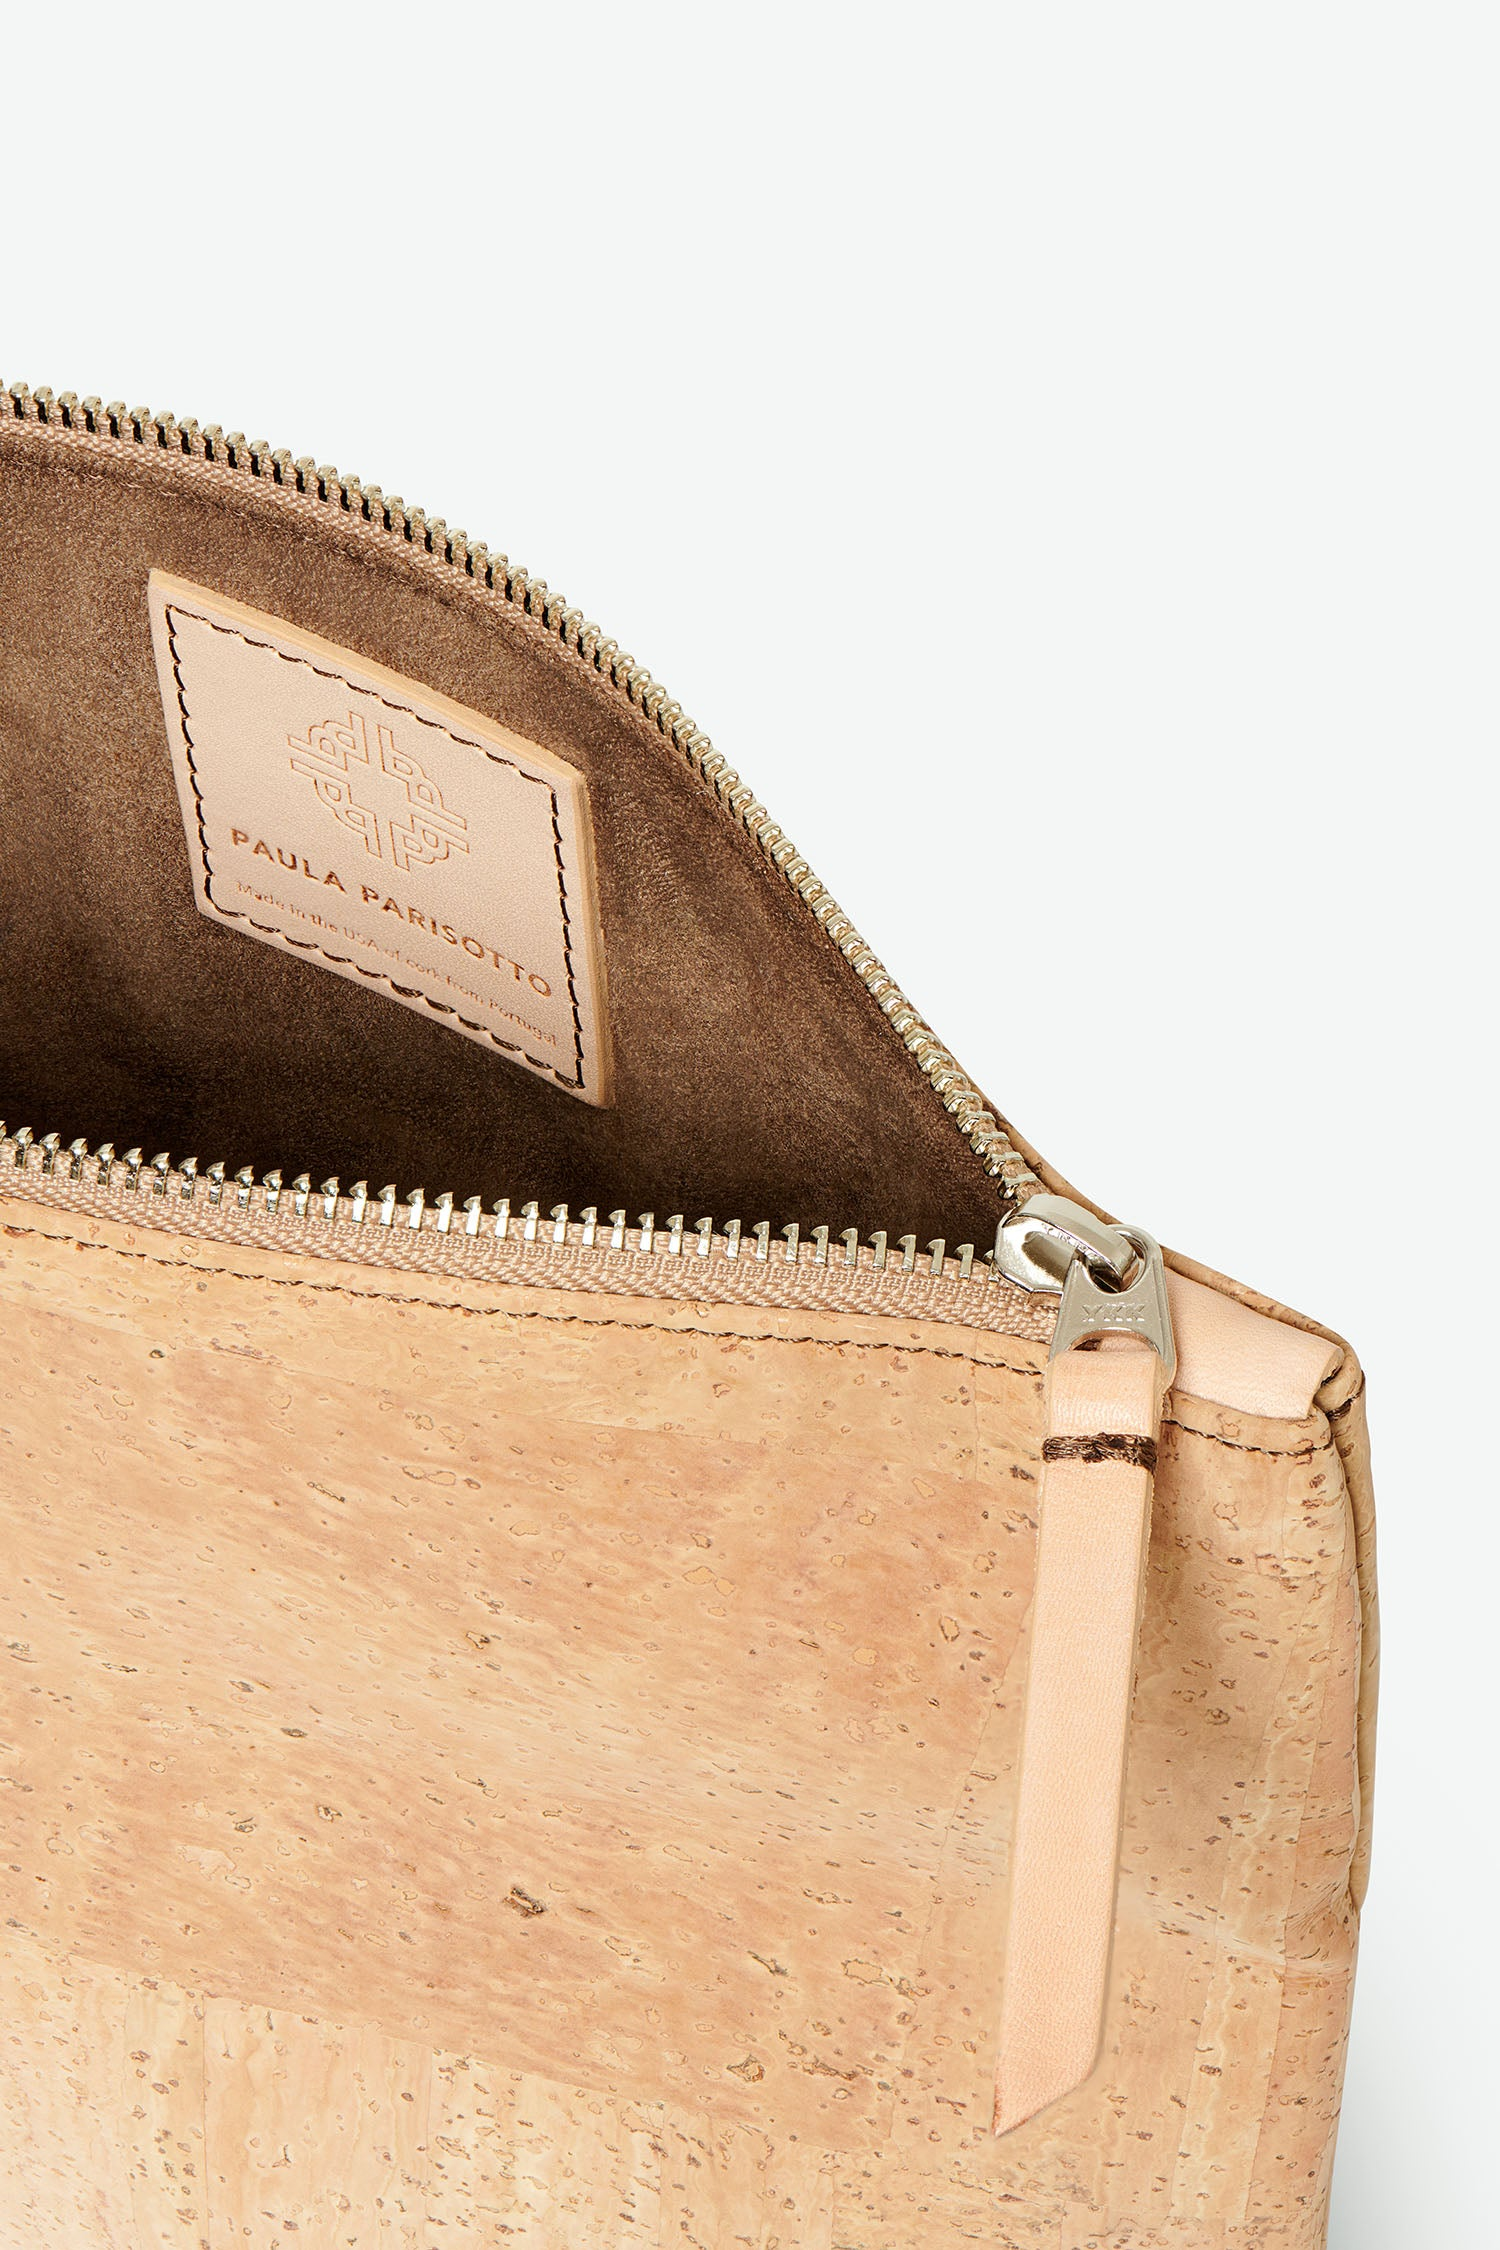 GiGi Versatile Cork Clutch - Natural